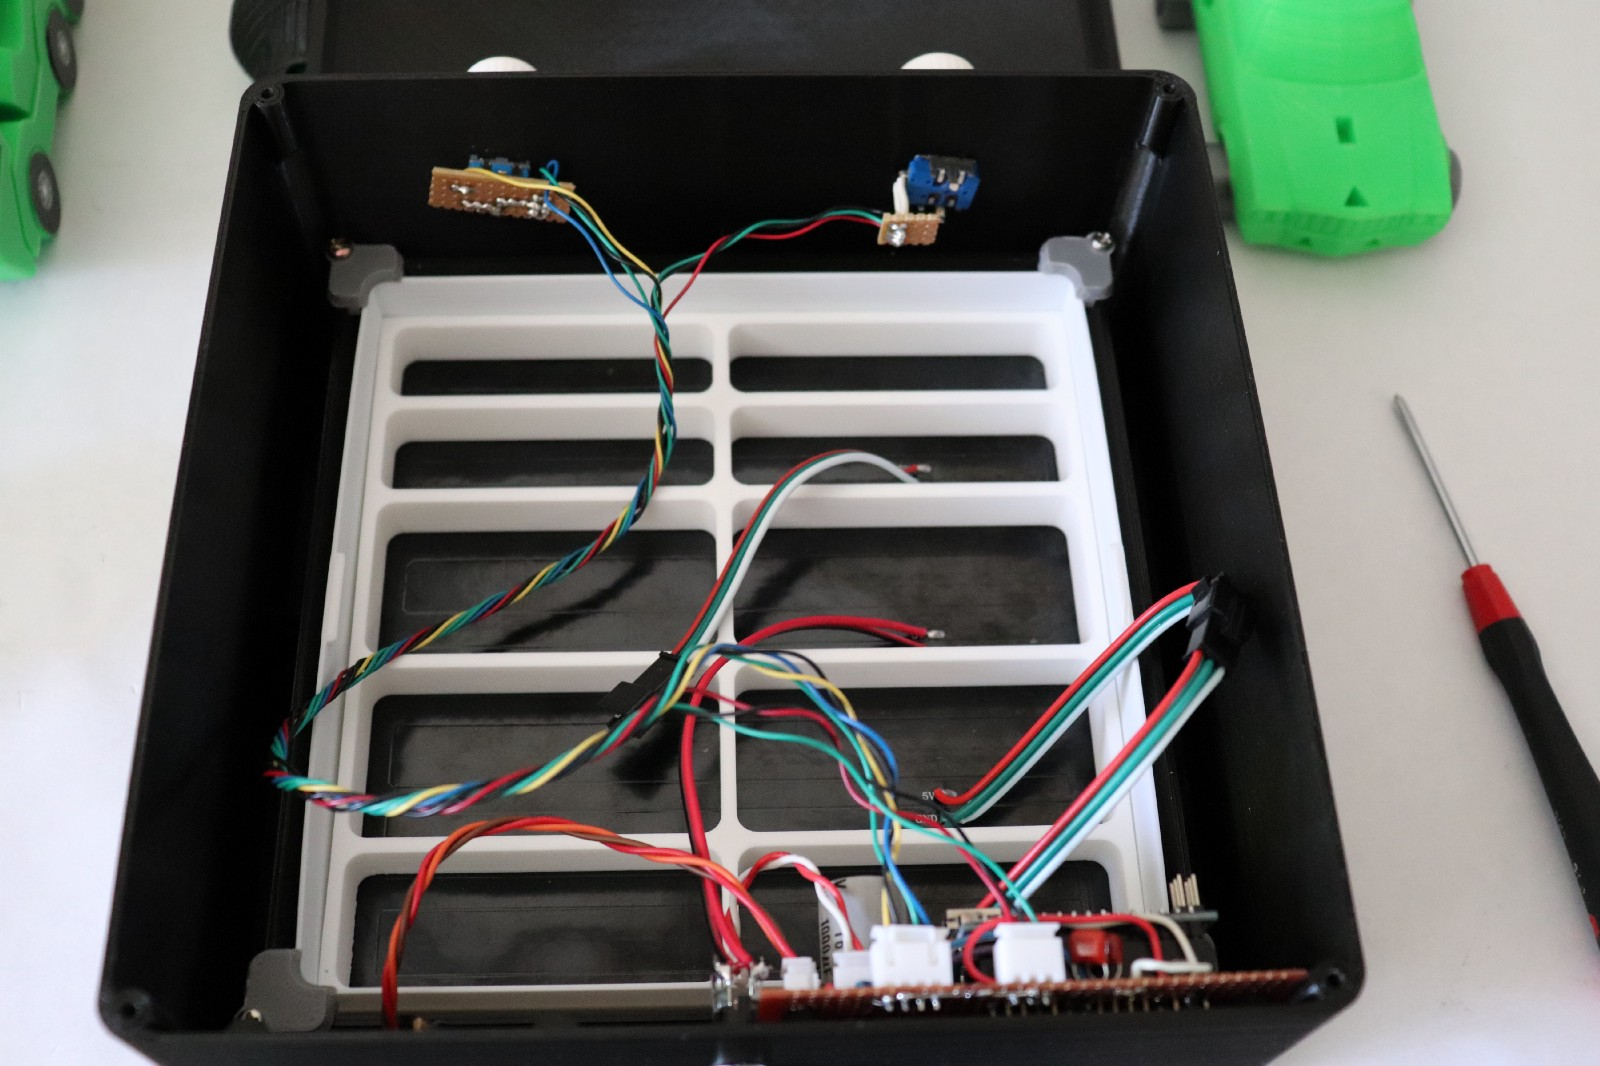 Keep Your Baby Entertained With Arduino Powered Led Matrix Wiring Two Potentiometers In Series Workinghards Code Those Controls Do Things The Potentiometer Brightness And Rotary Encoder Changes Channel